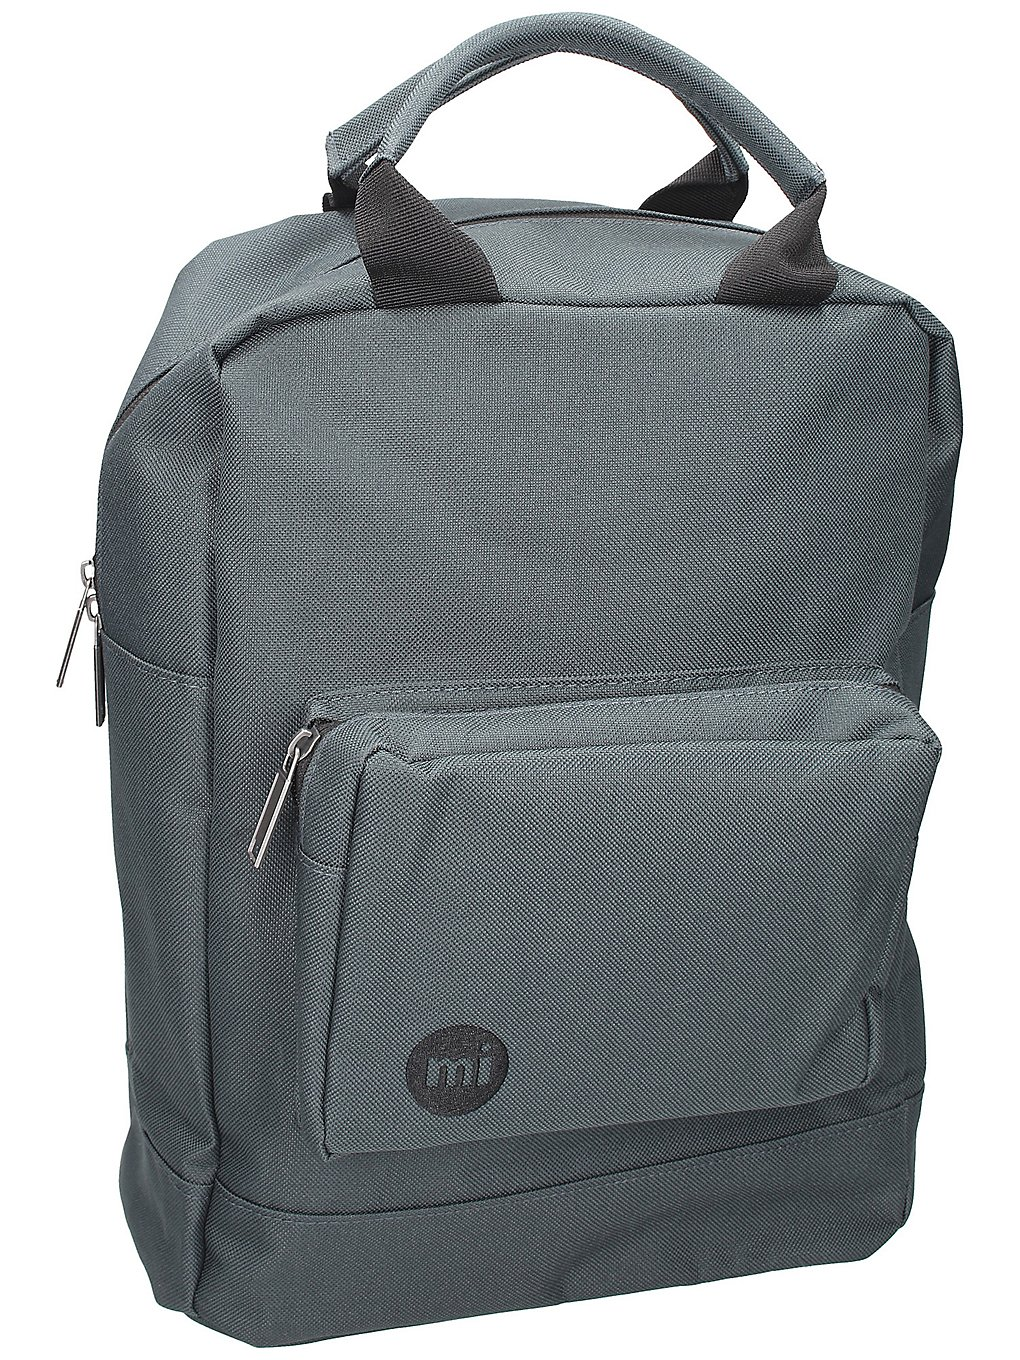 Image of Mi-Pac Tote Decon Classic Backpack anthracite Uni